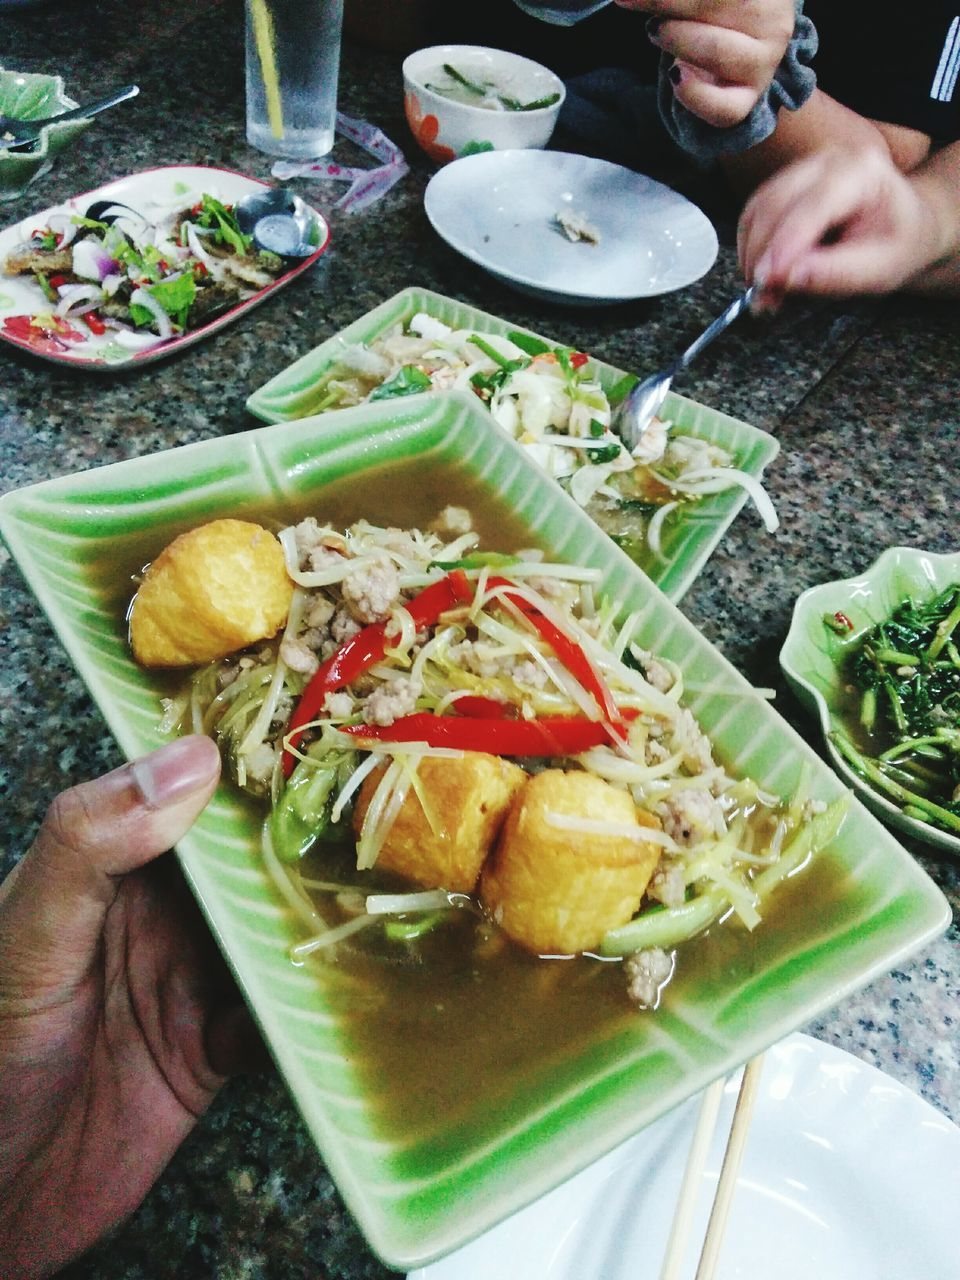 human hand, human body part, food and drink, food, real people, one person, holding, human finger, plate, freshness, ready-to-eat, bowl, table, chopsticks, healthy eating, close-up, serving size, fork, lifestyles, high angle view, indoors, meal, slice, eating, women, men, day, people